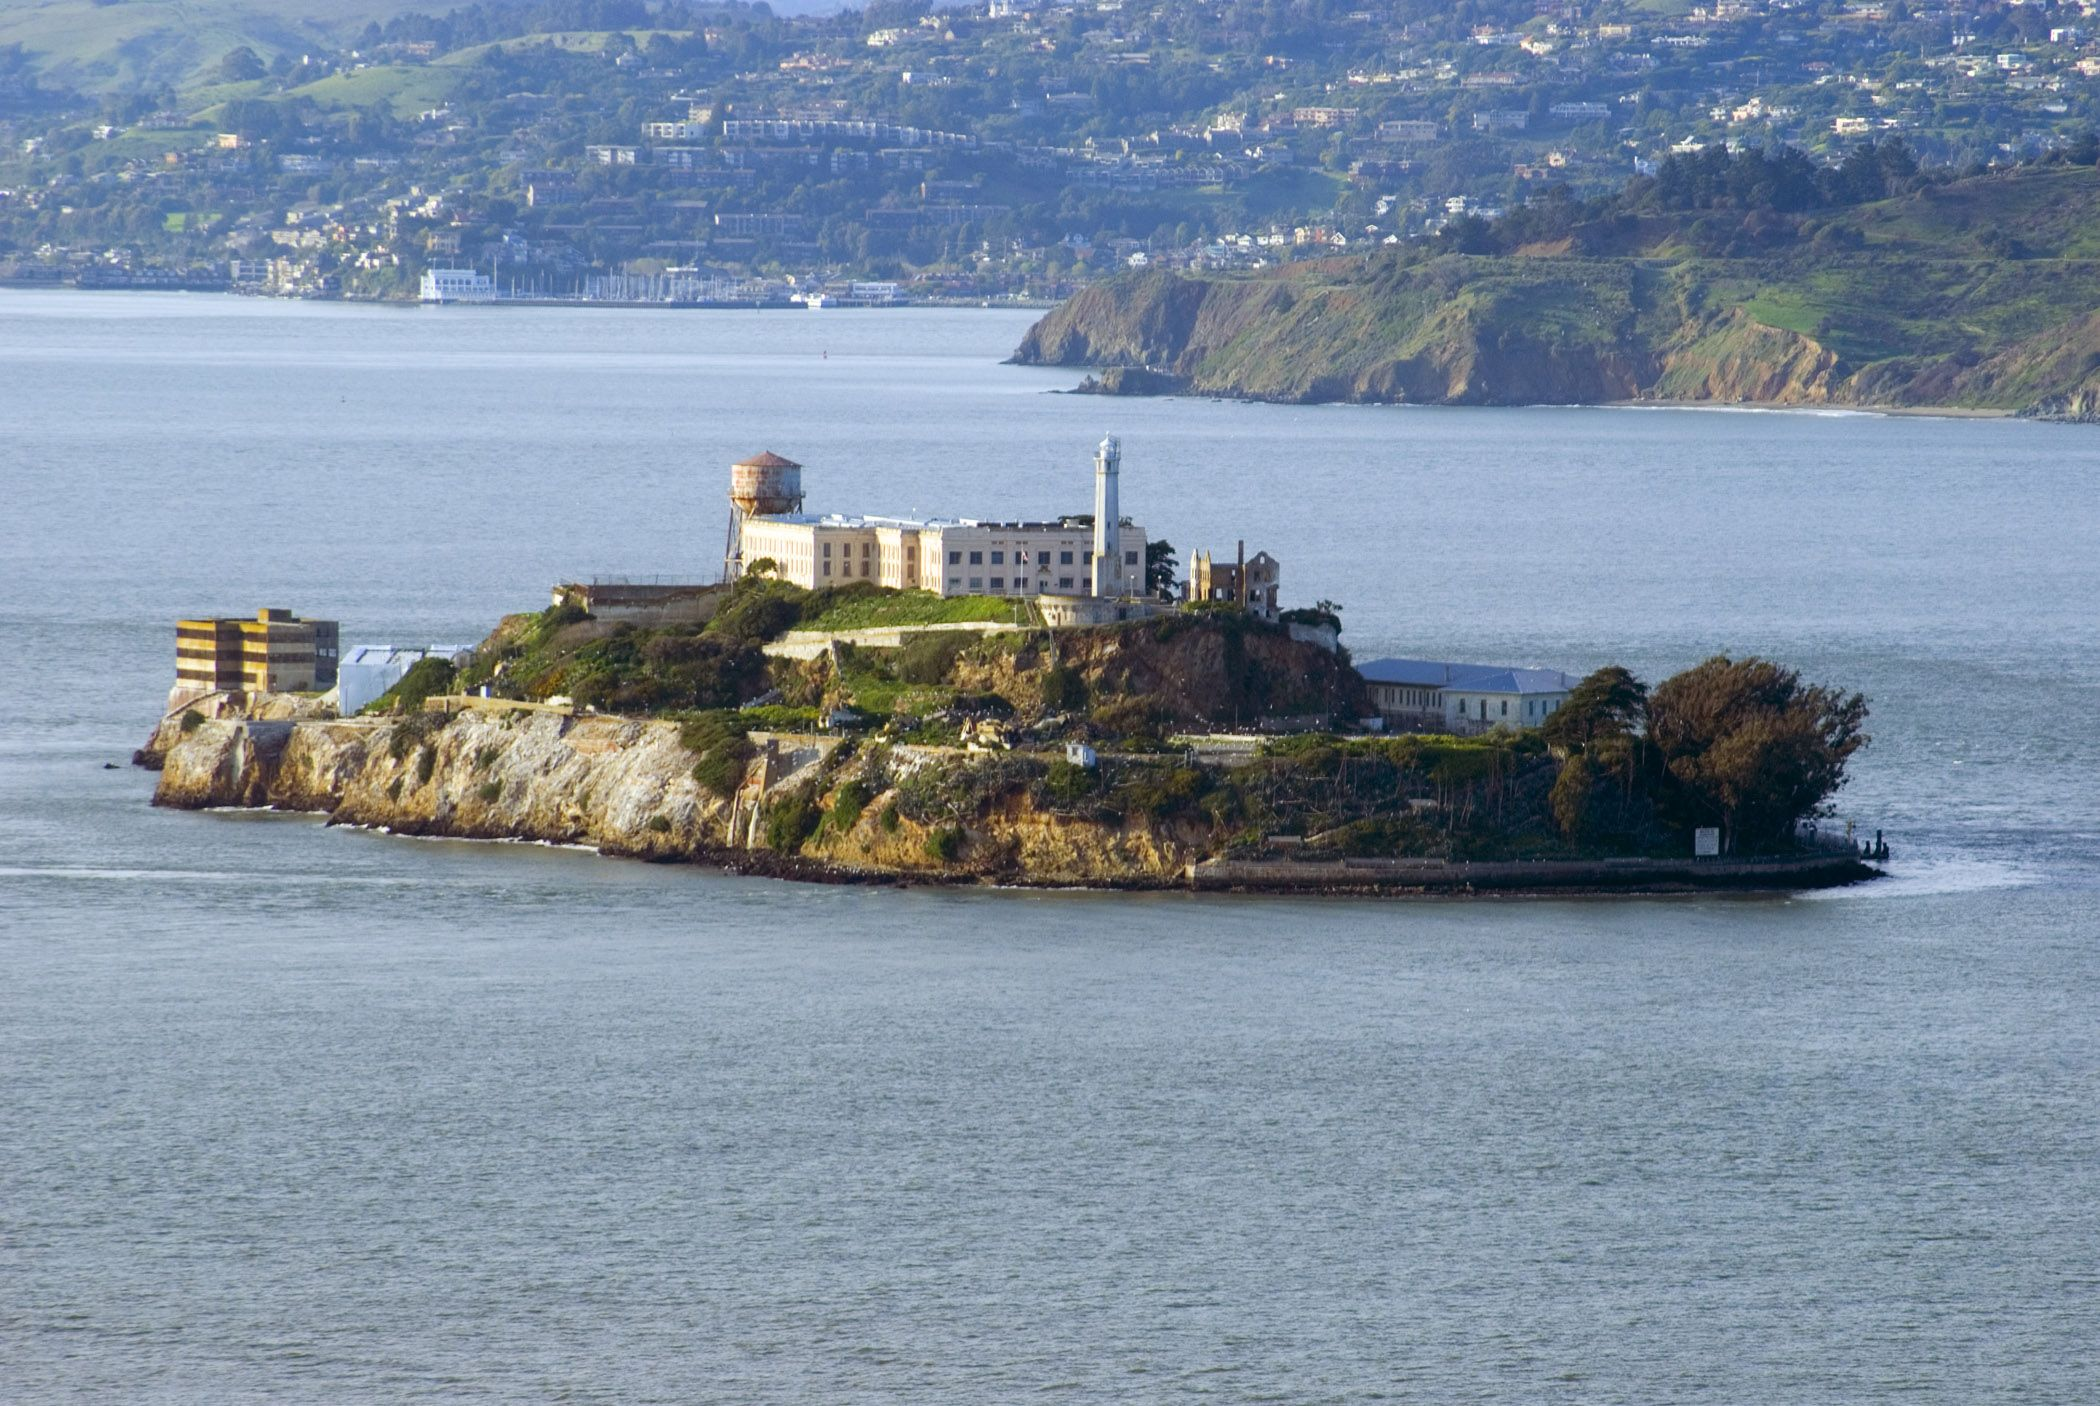 Alcatraz Island Is Located In The San Francisco Bay 1 5 Miles